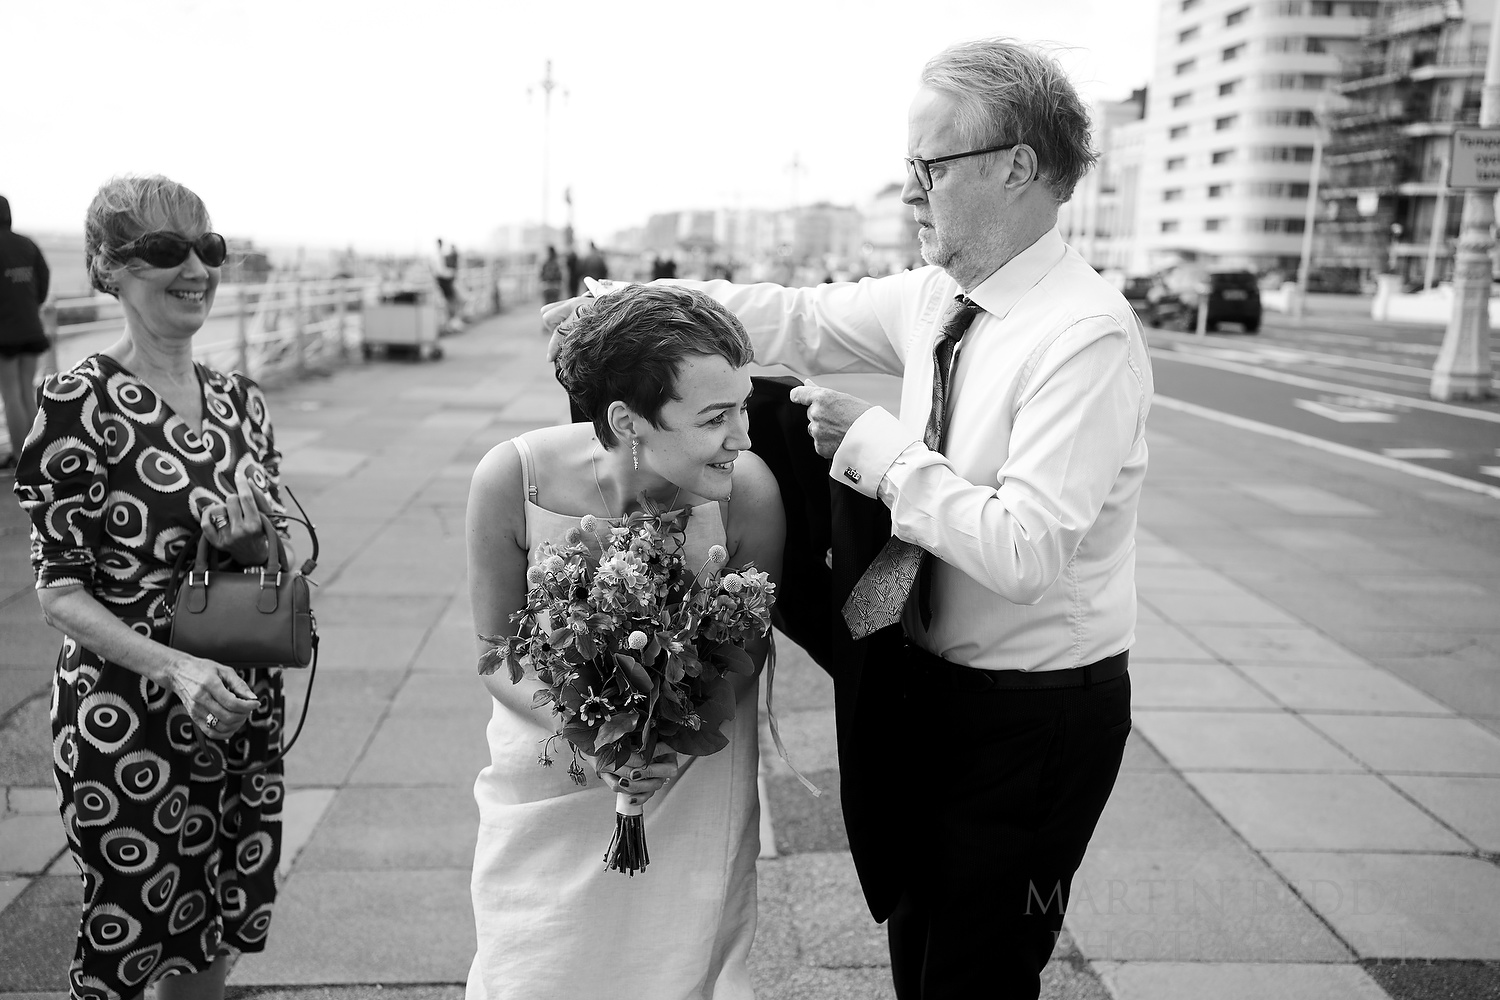 Bride's father offers his jacket